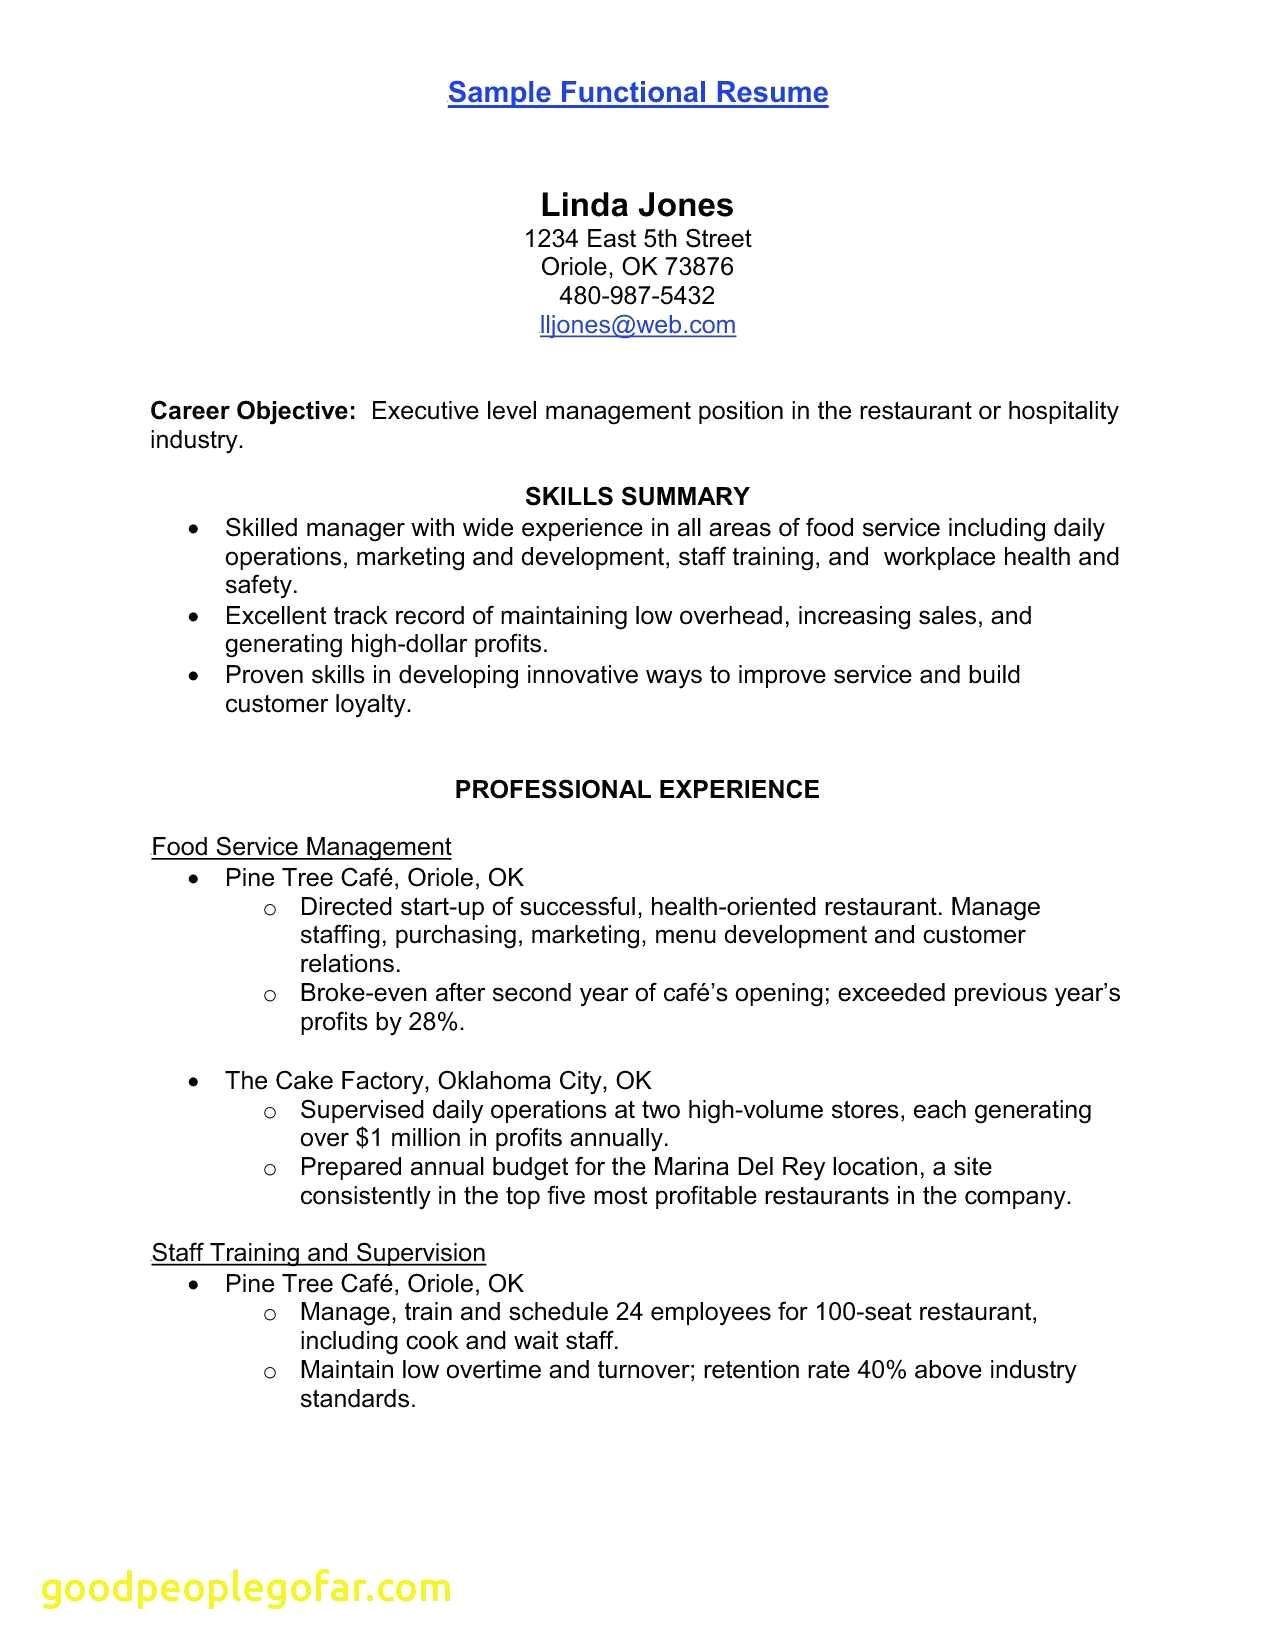 Executive Summary for Resume - 59 Standard Executive Summary for Resume